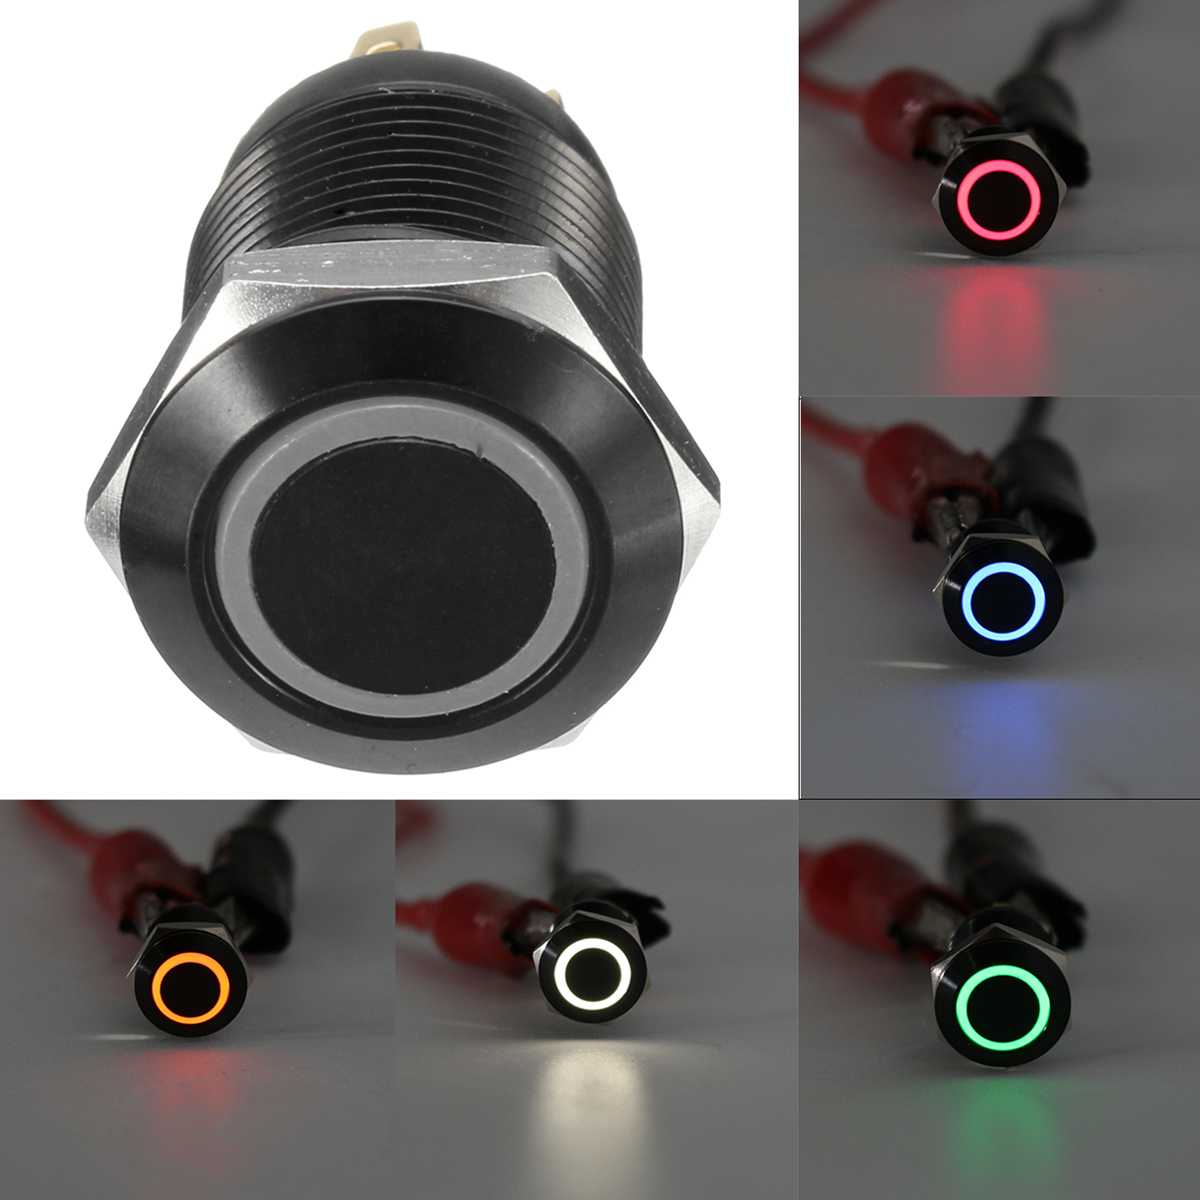 Black 4 Pin 12mm LED Light Metal Push Button Momentary Switch Waterproof 12V Switches Car Electronics(China)